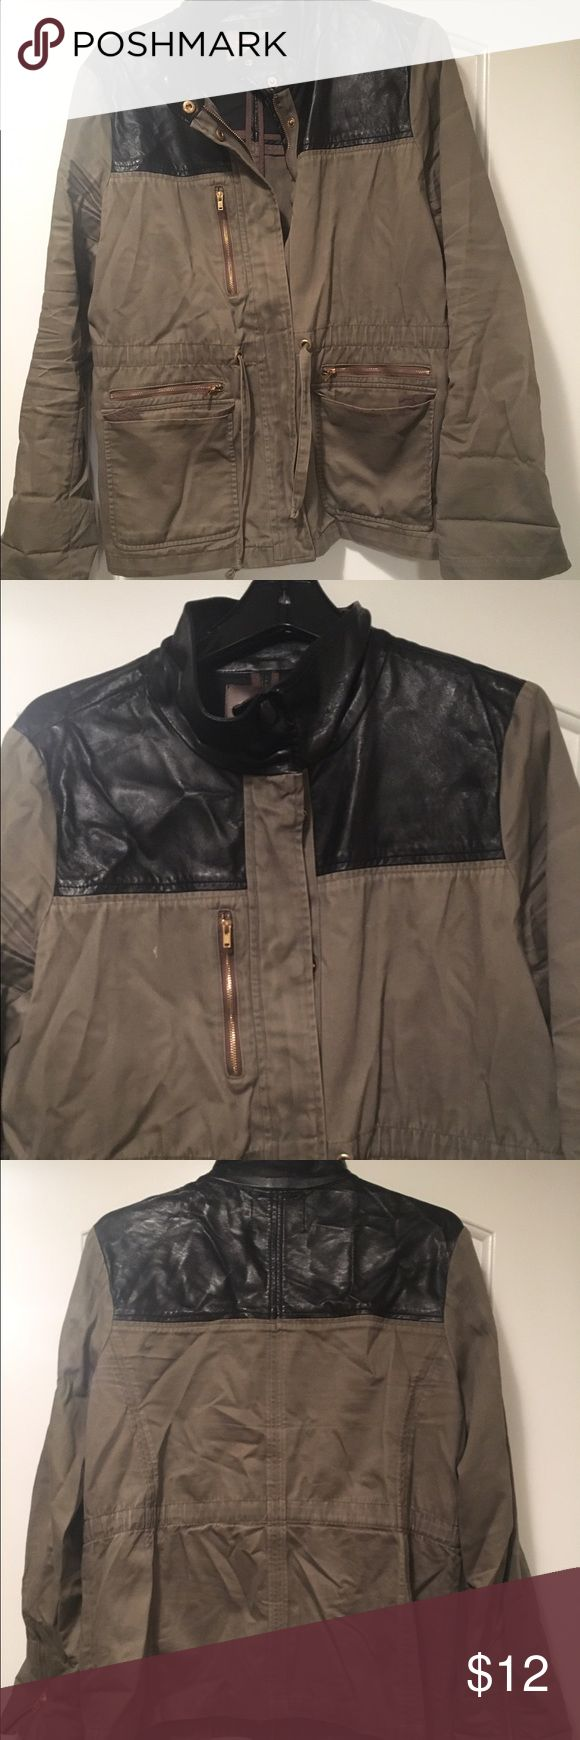 🎉 Forever 21 Utility jacket GREAT LOW PRICE Love 21 Contemporary anorak jacket with faux leather paneling and side pockets. Trusty jacket for layering in fall & spring! Just needs a steaming or ironing! Forever 21 Jackets & Coats Utility Jackets